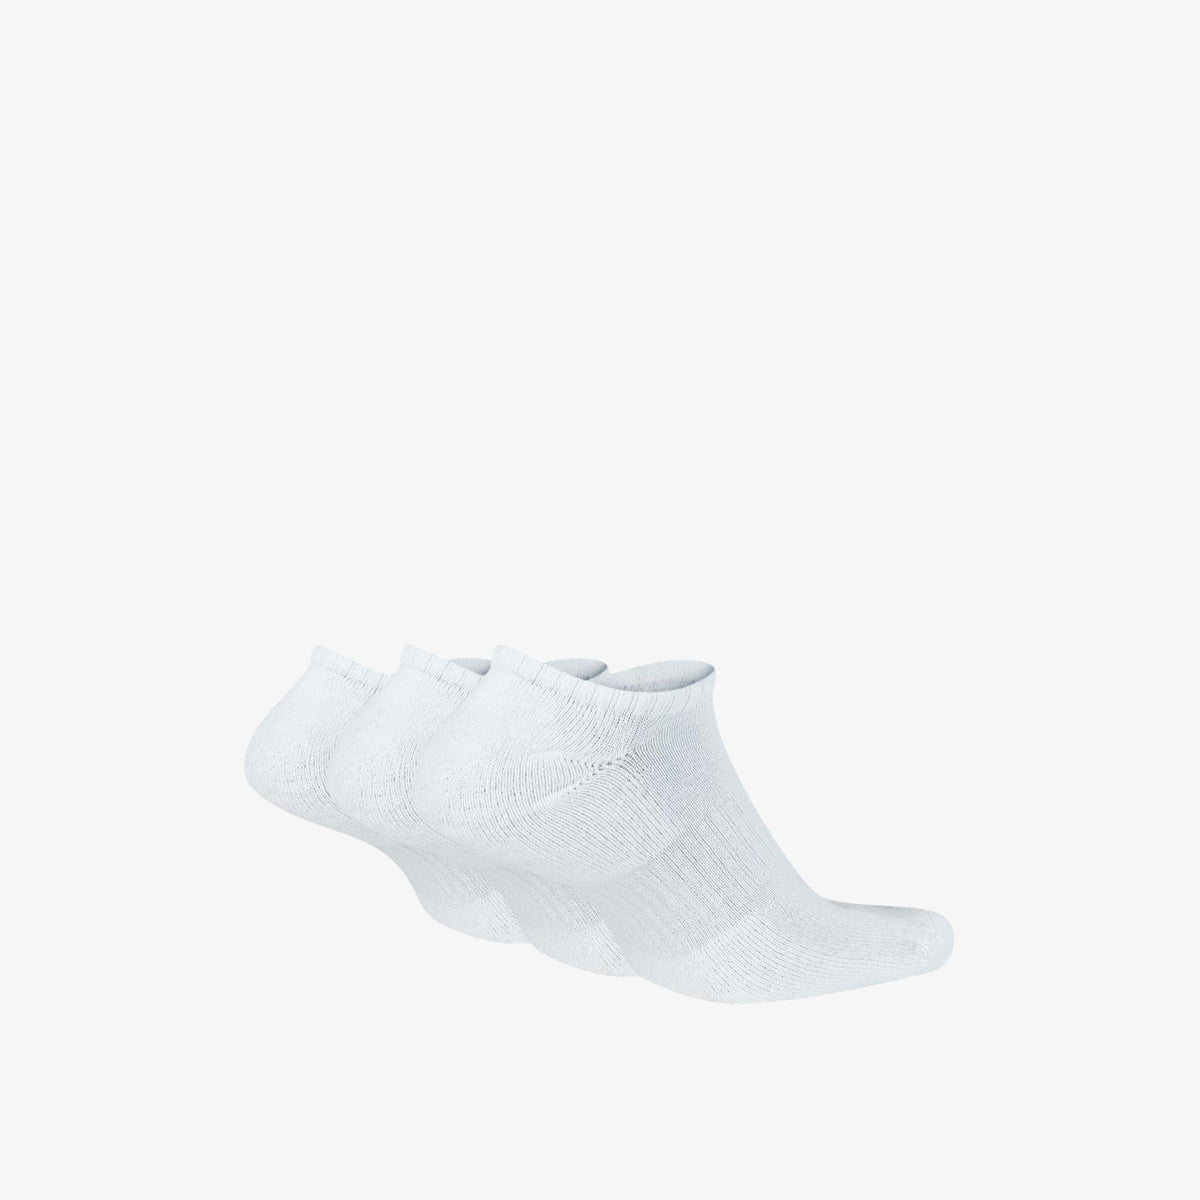 Nike Everyday Cushion No-Show Socks (3 Pack) - White